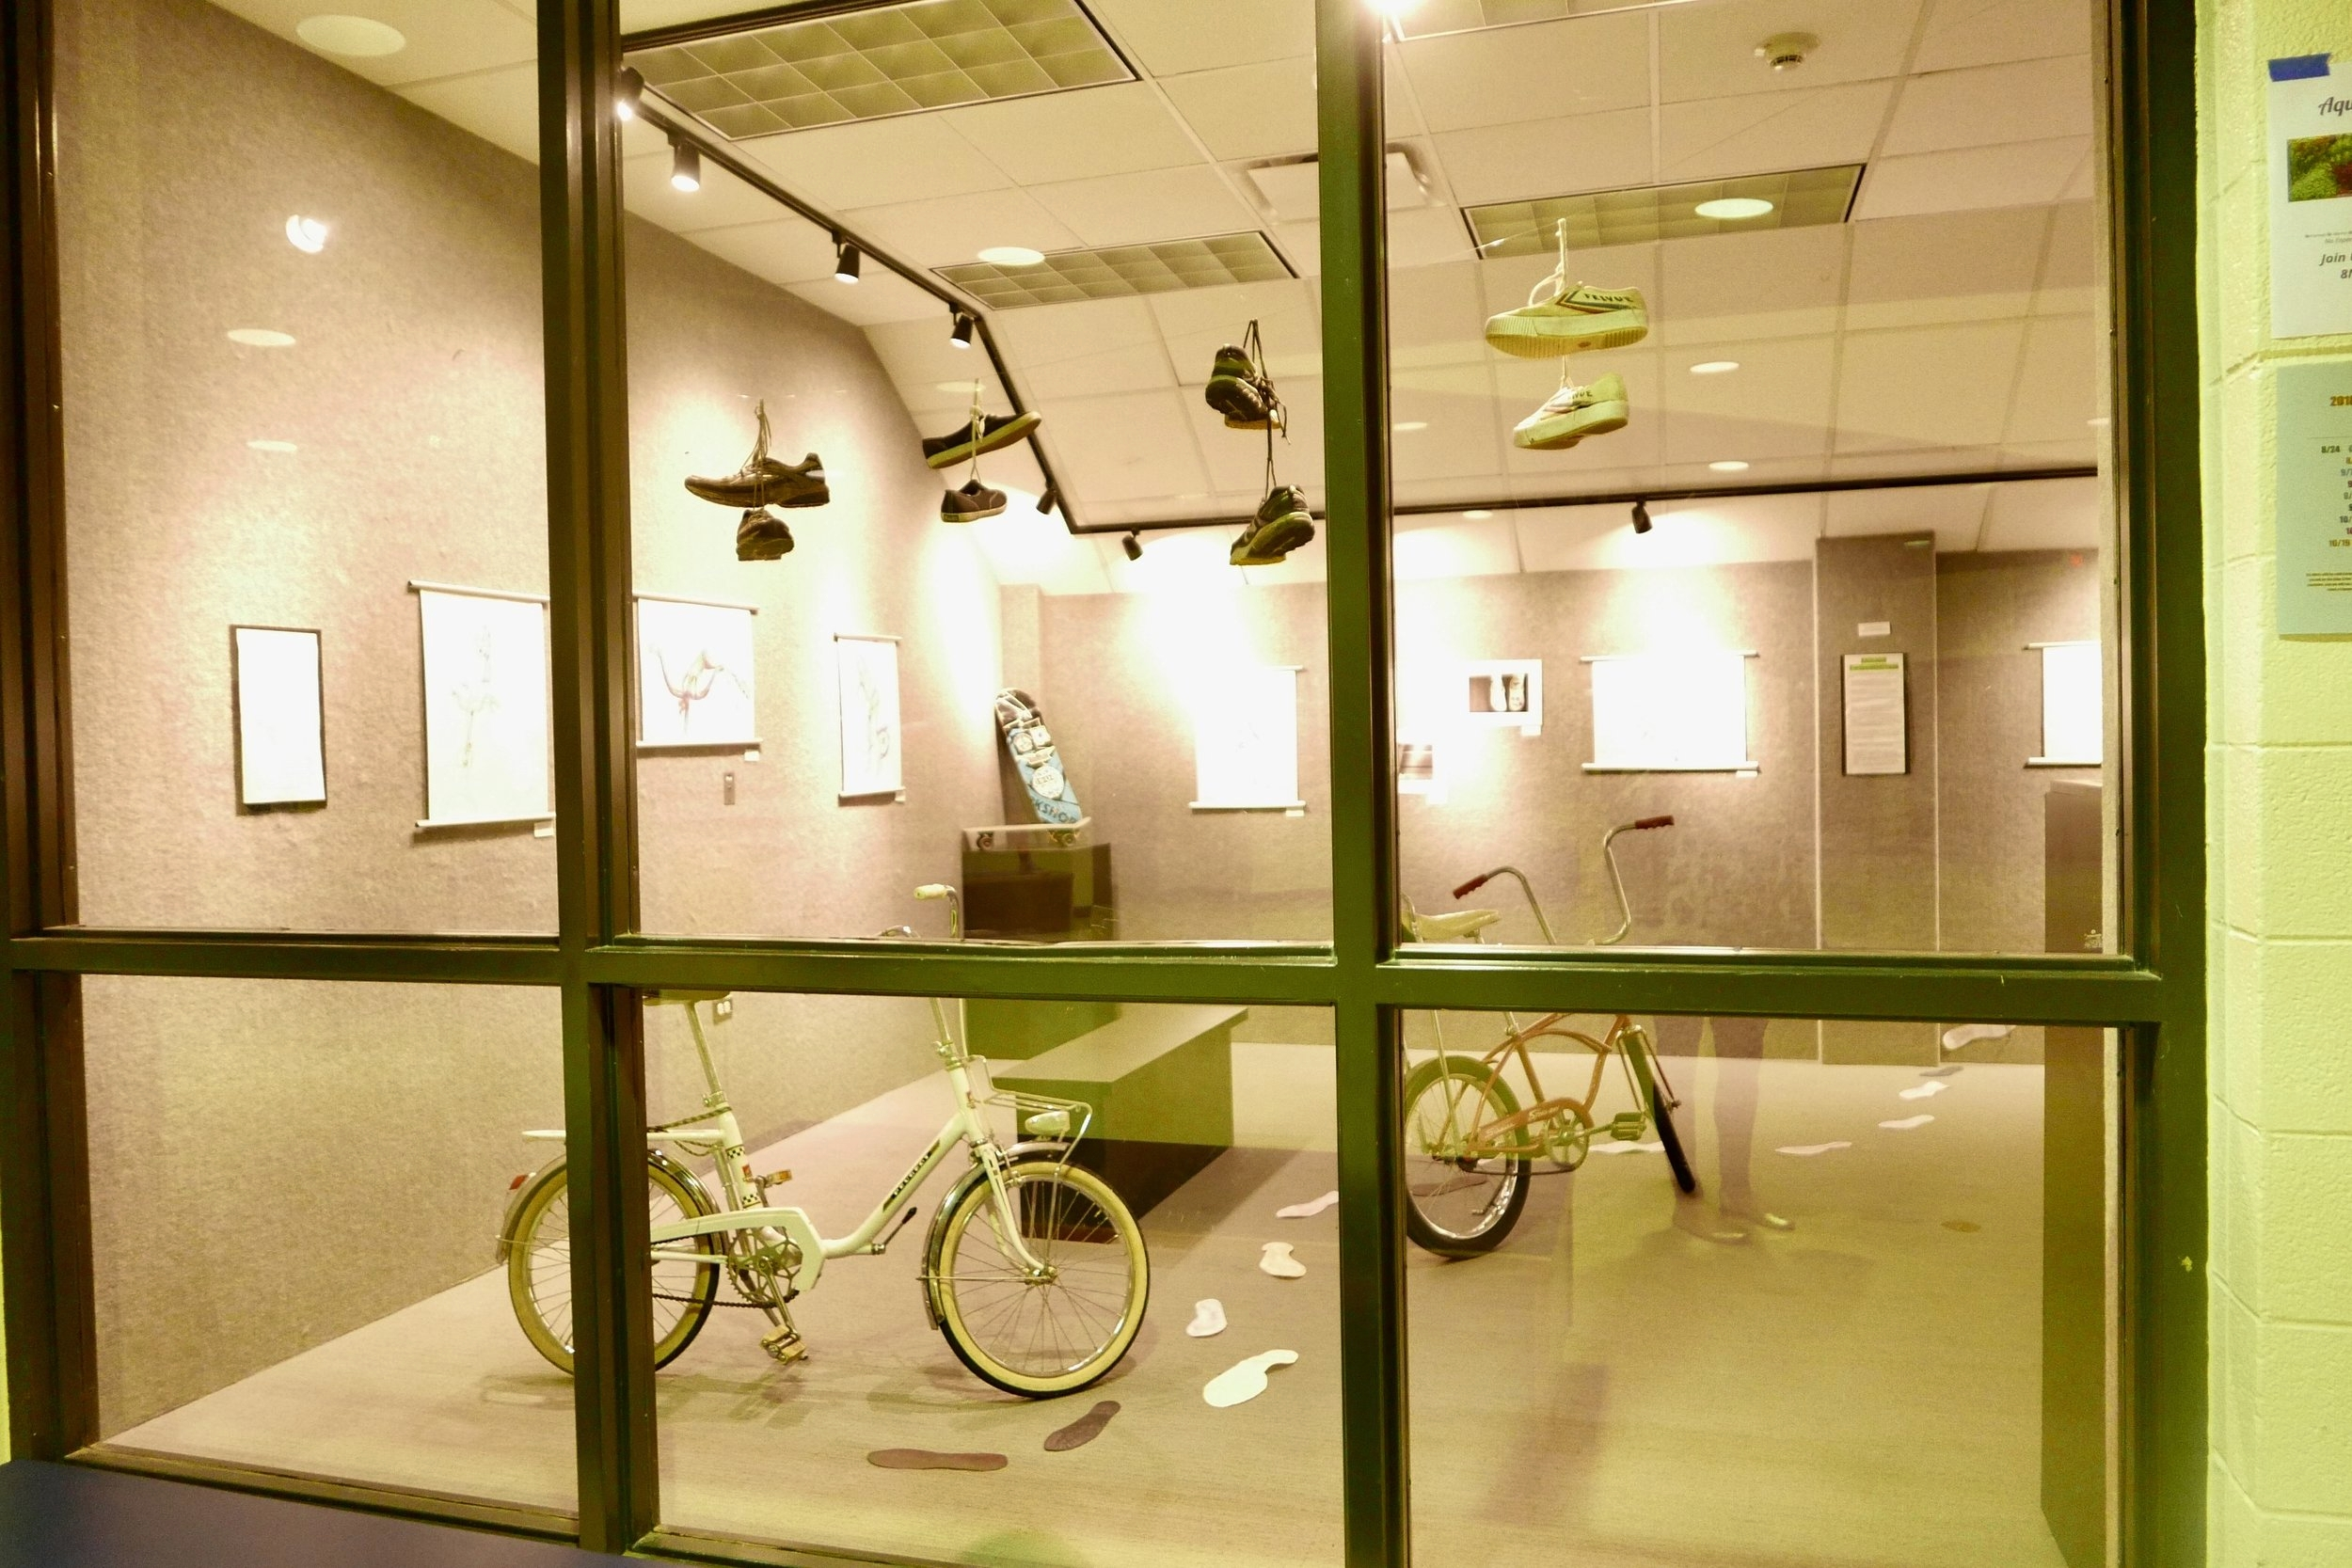 students collected alternative transportation methods such as bicycles, skateboards and shoes from staff to include in the gallery's first environmental show.